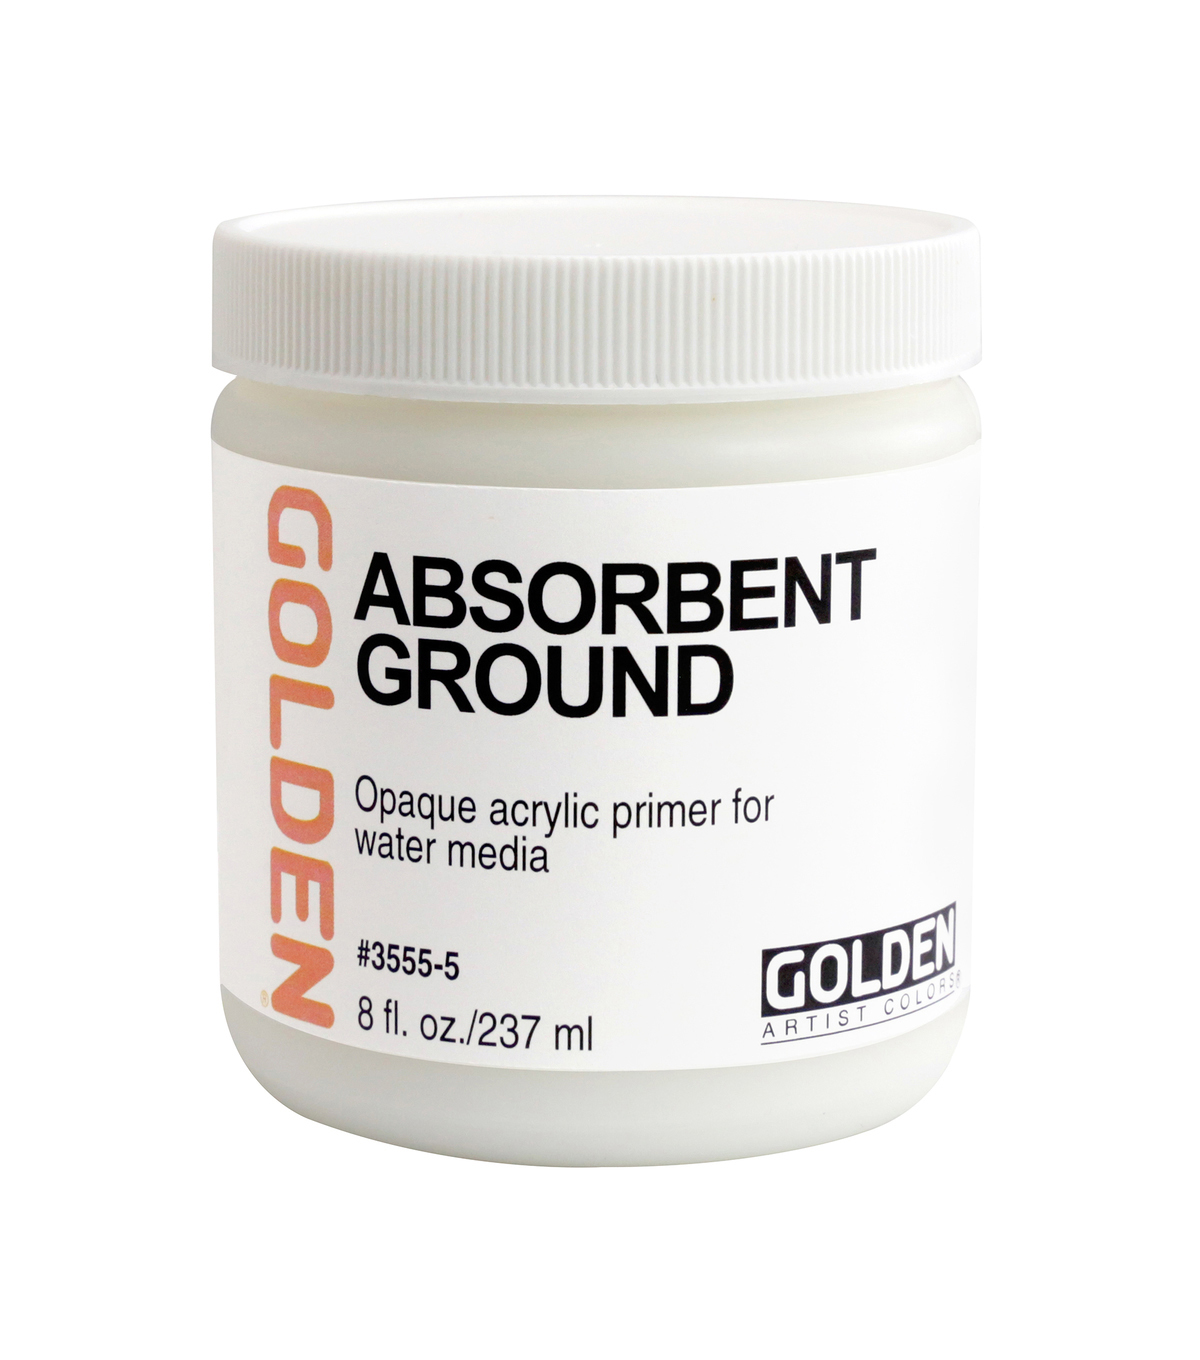 Golden Absorbent Ground 8oz.